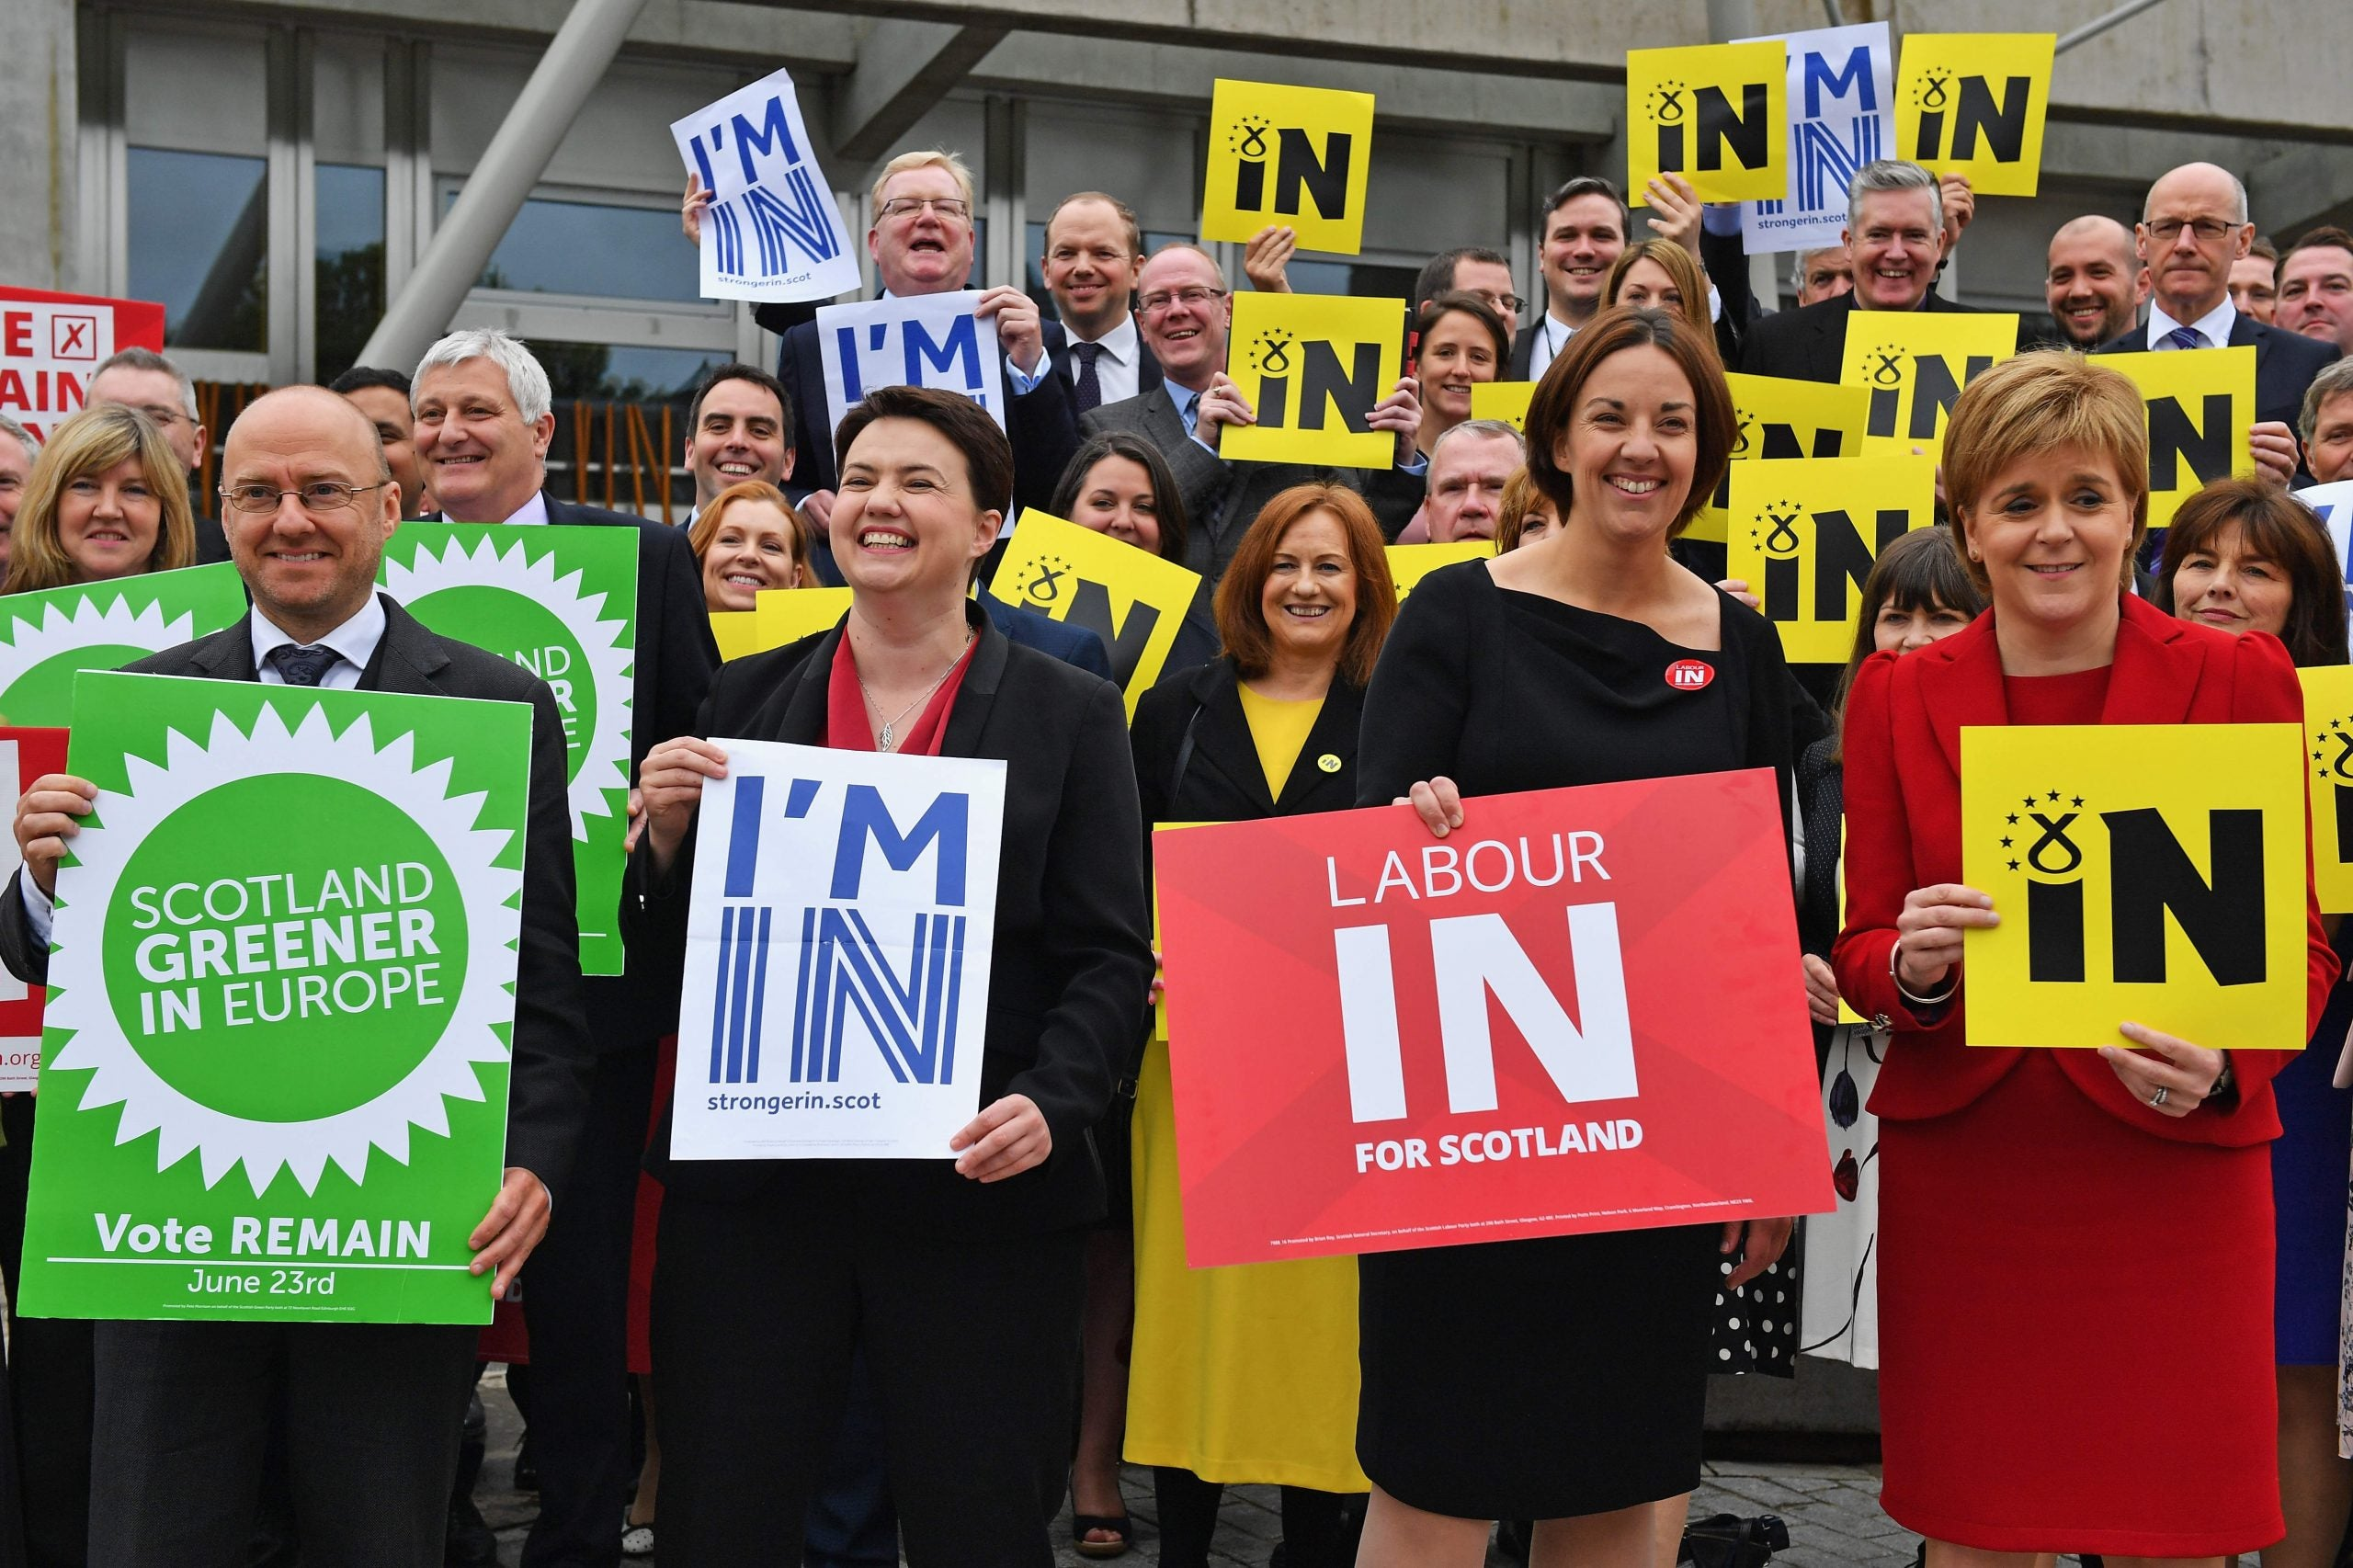 Progressive voters must ditch party differences to gain a voice in Brexit Britain